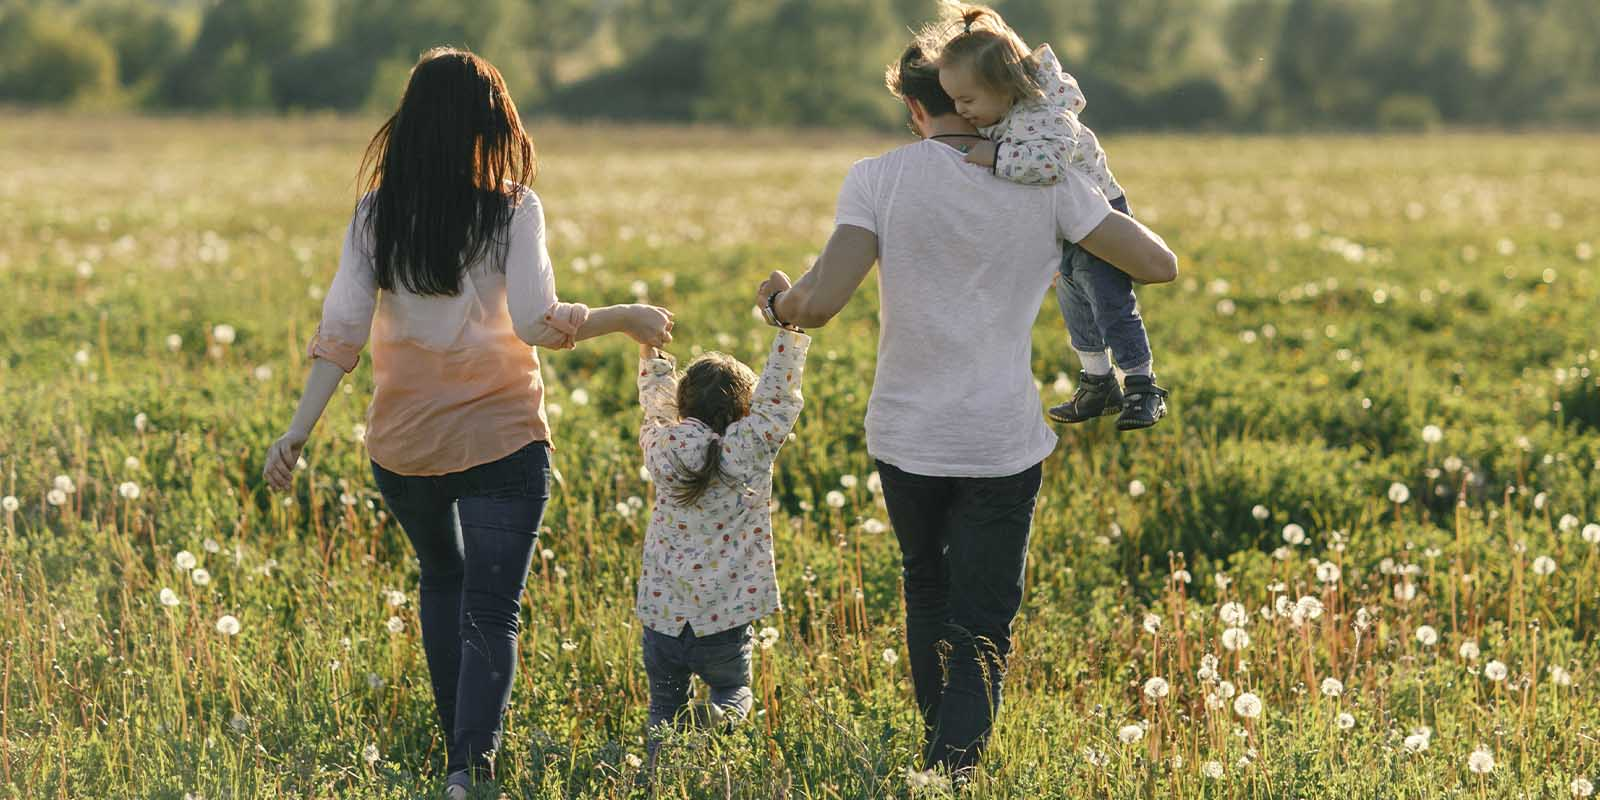 When compared with Spain, Portugal allows more family members under the same residency application, making it an ideal option for families.